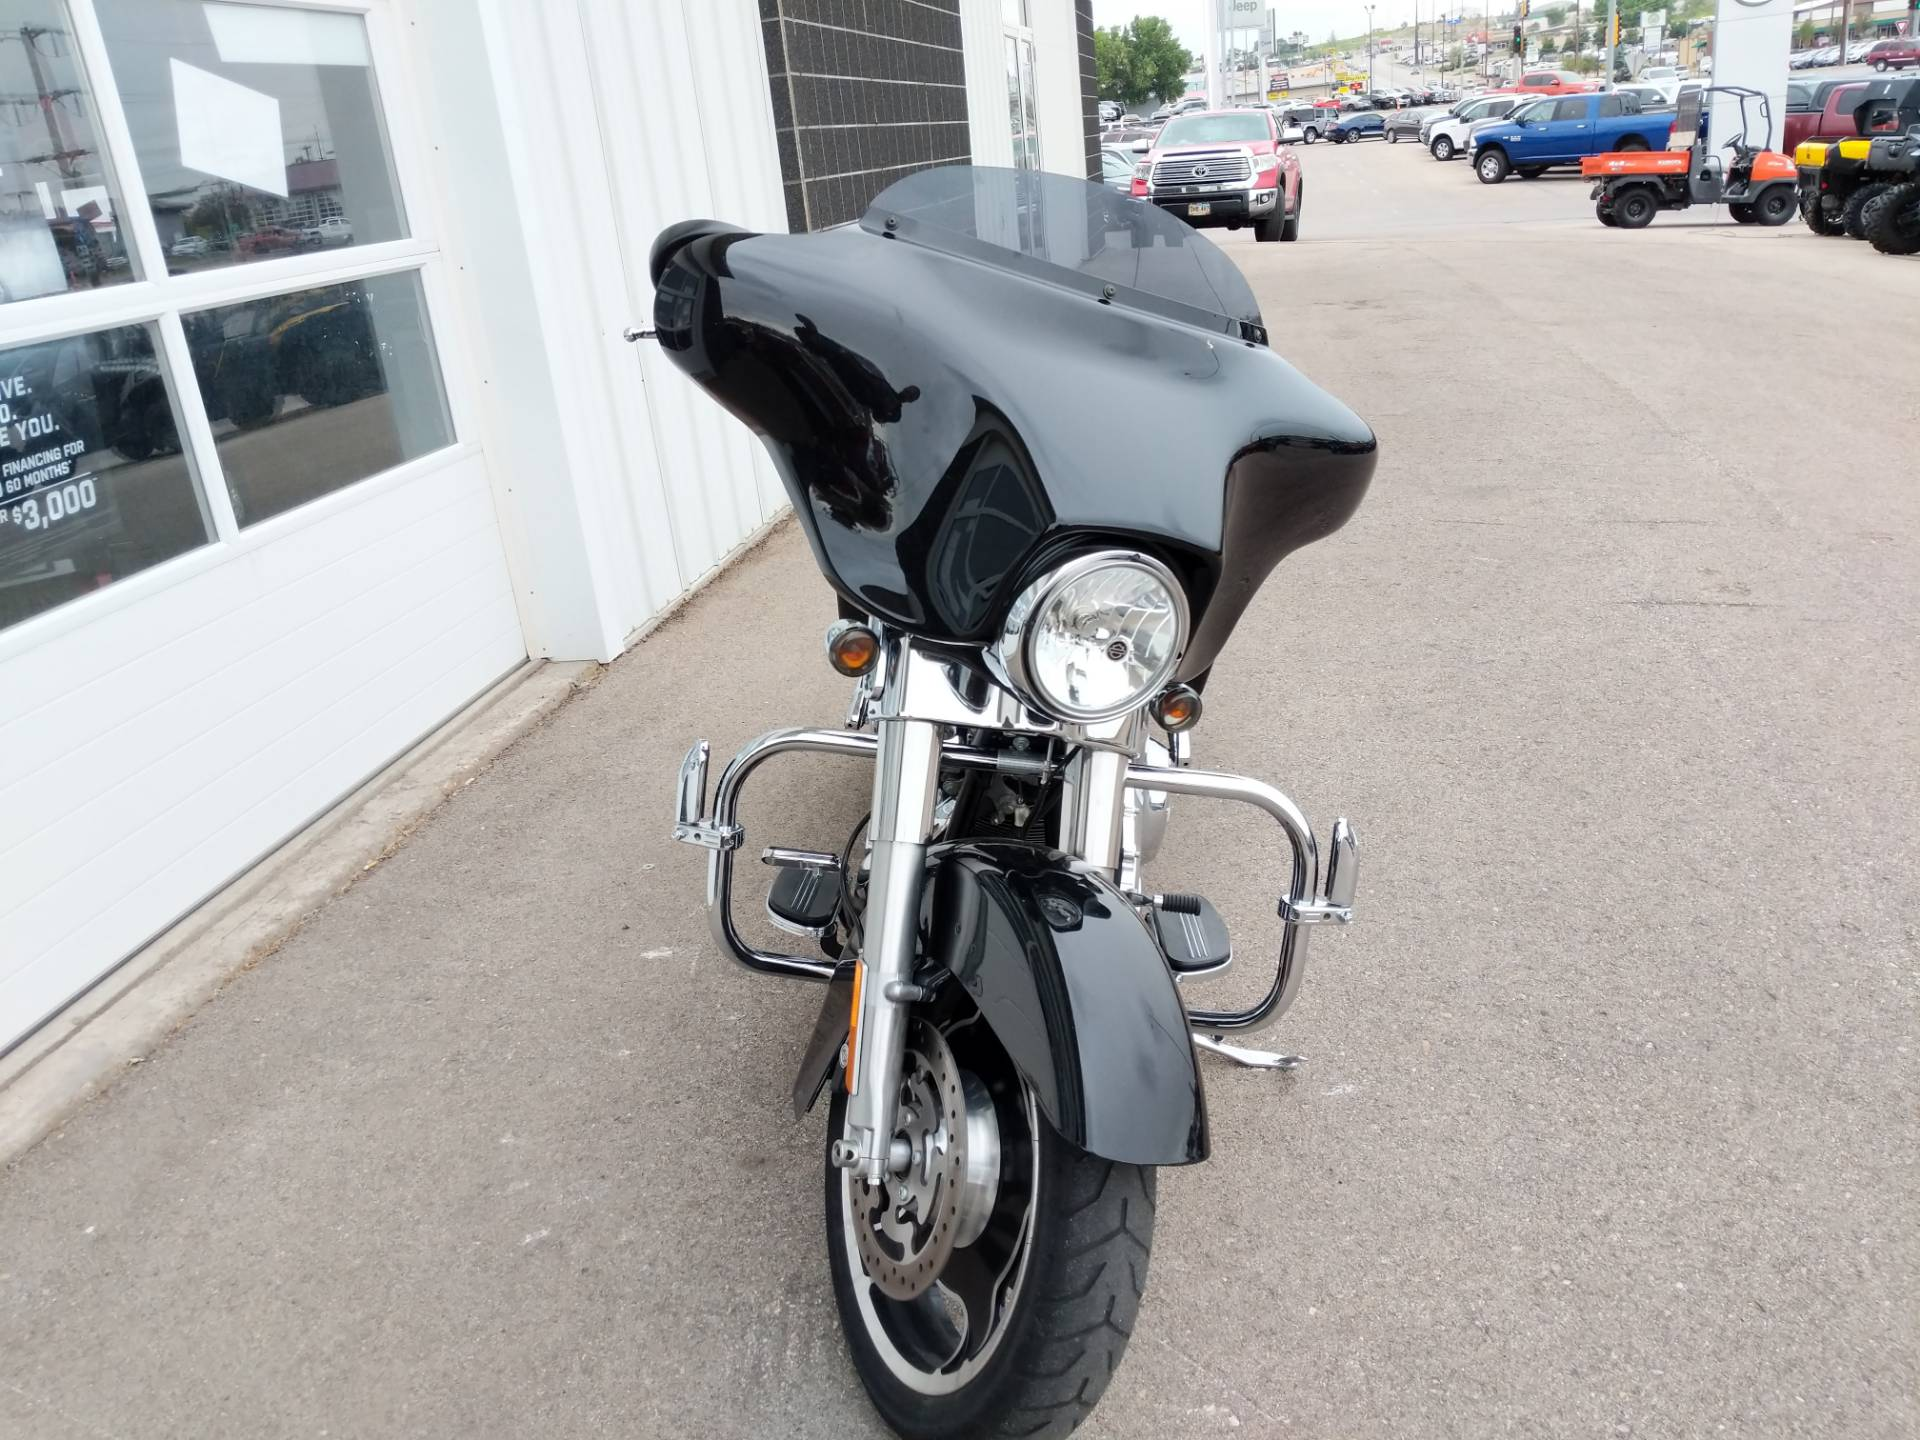 Used 2012 Harley Davidson Street Glide Motorcycles In Rapid City Sd South Dakota